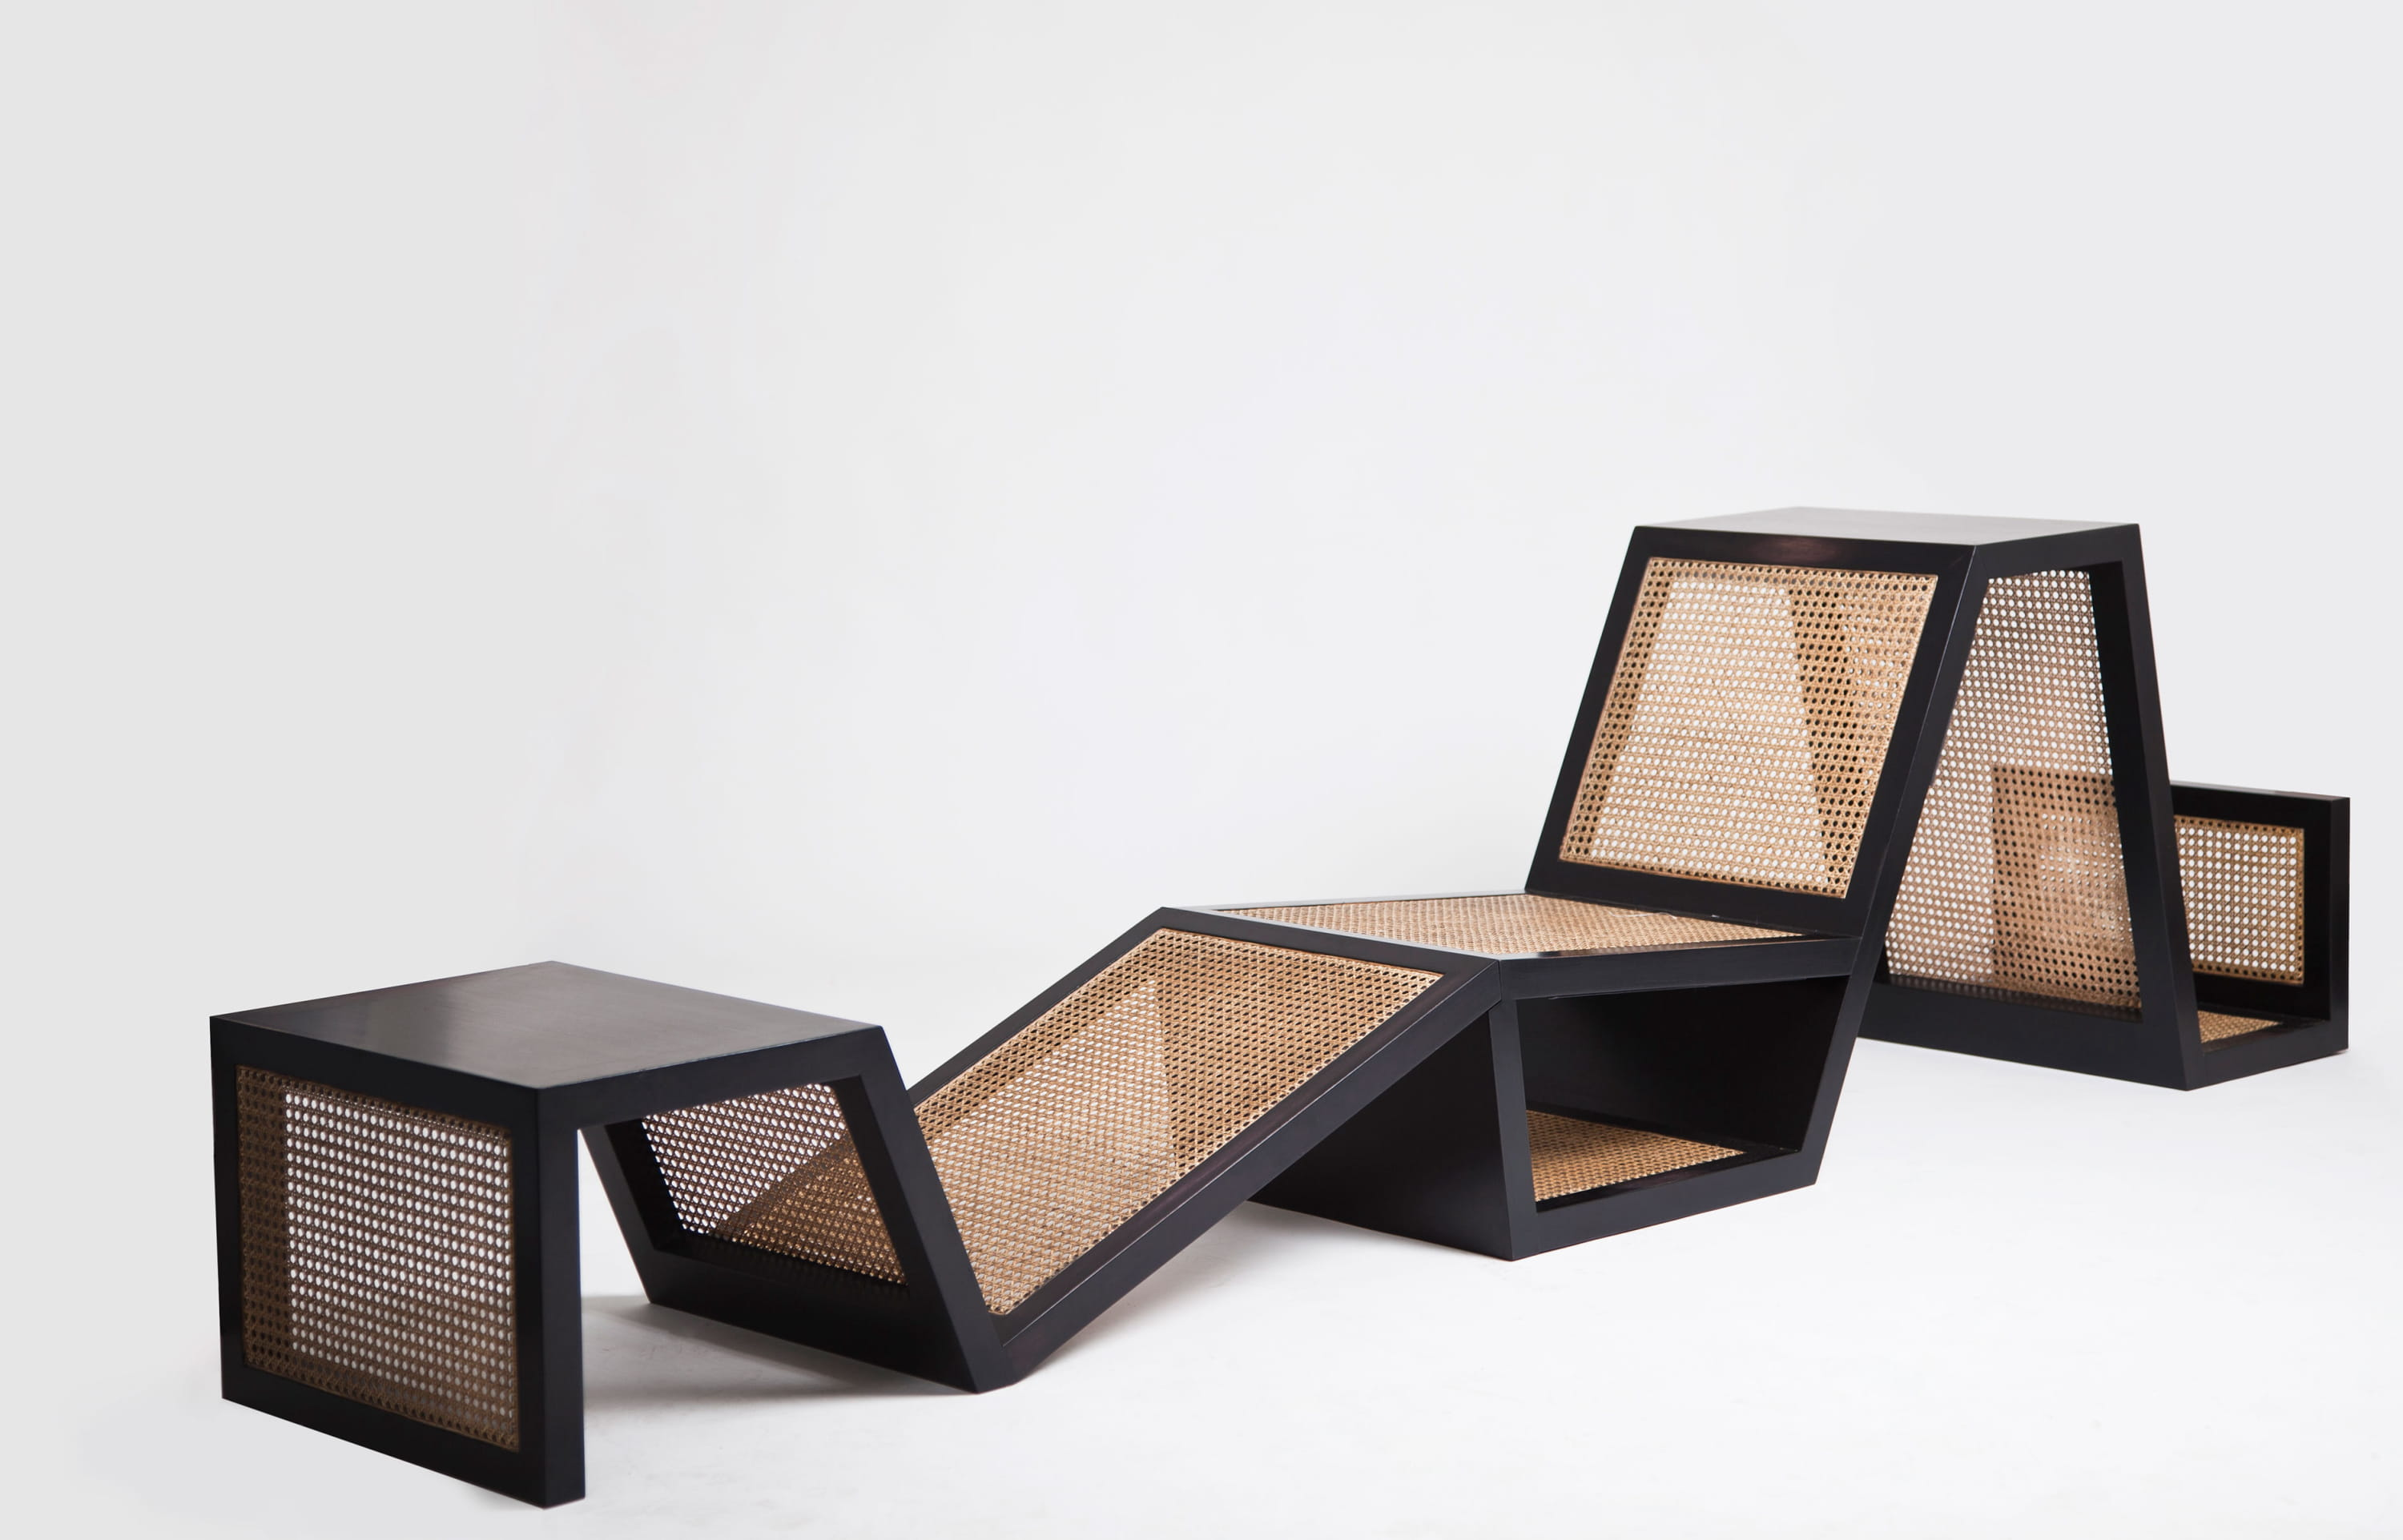 beyrouth la nouvelle vague du design libanais. Black Bedroom Furniture Sets. Home Design Ideas